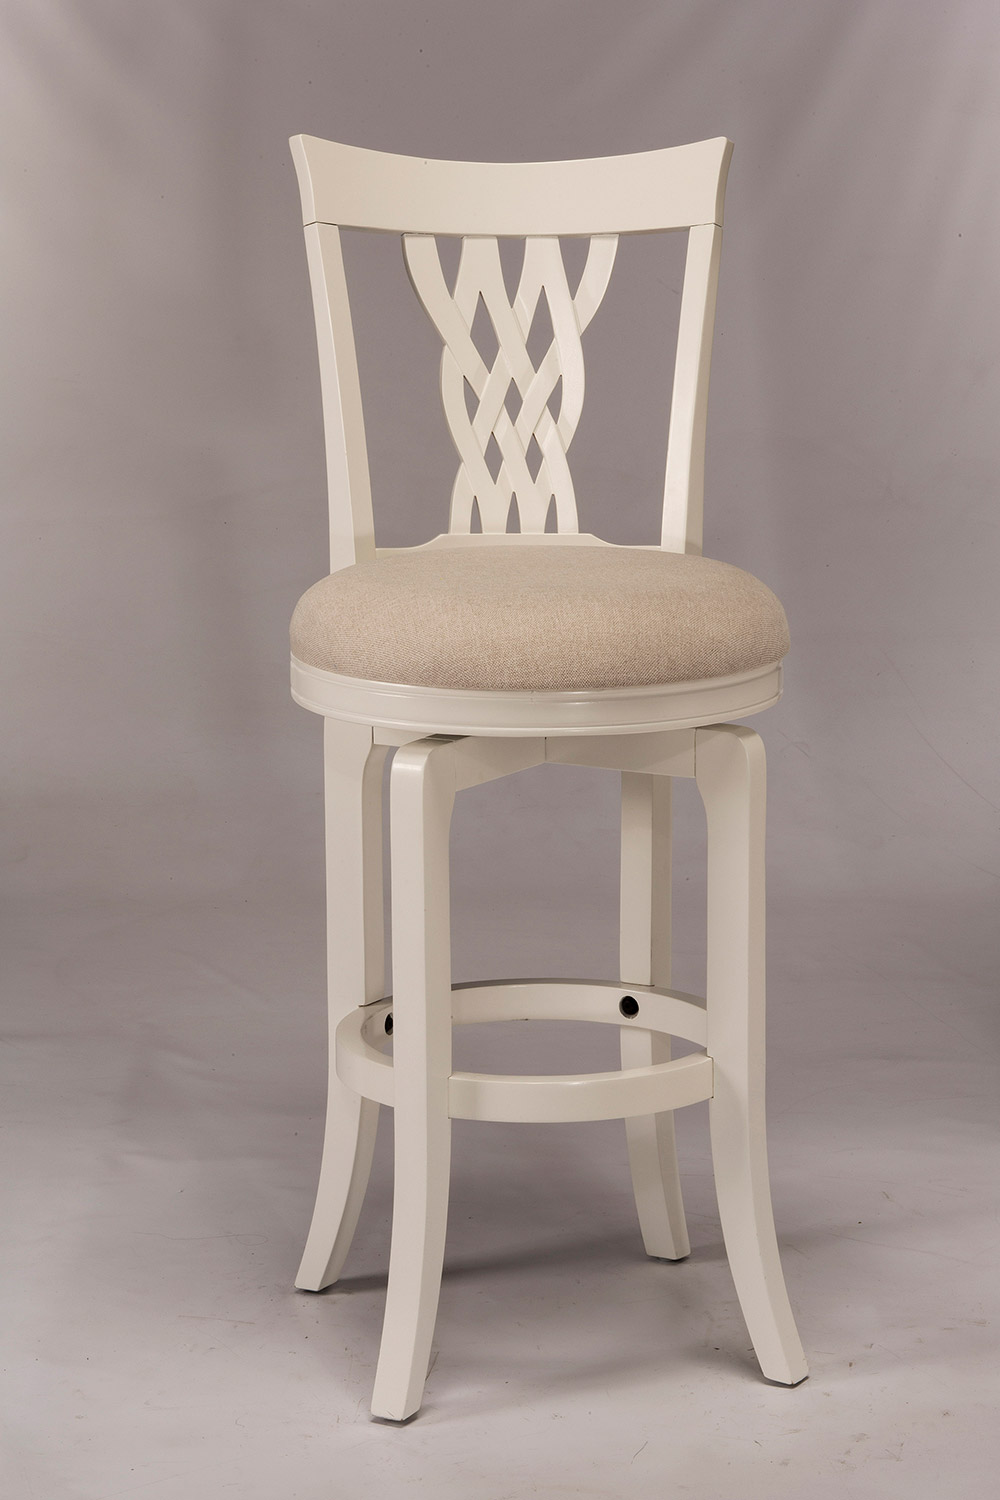 Hillsdale Embassy Swivel Bar Stool White HD 5753 830 at  : HD 5753 830 from www.homelement.com size 1000 x 1500 jpeg 171kB